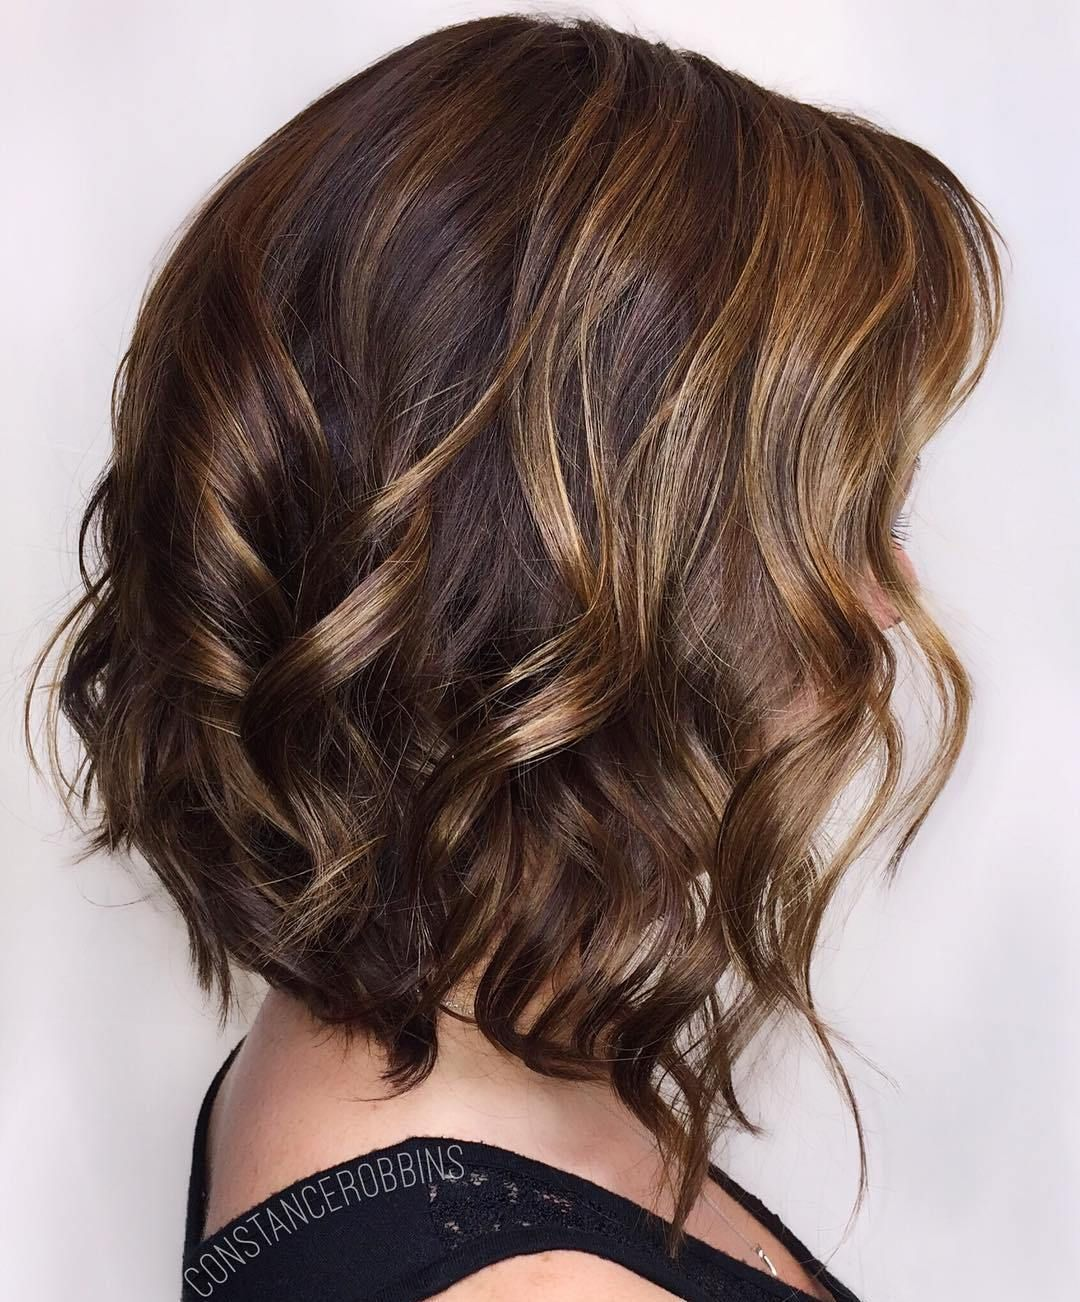 50 Ideas For Light Brown Hair With Highlights And Lowlights Brown Hair With Highlights Brown Hair With Caramel Highlights Brown Hair With Highlights And Lowlights